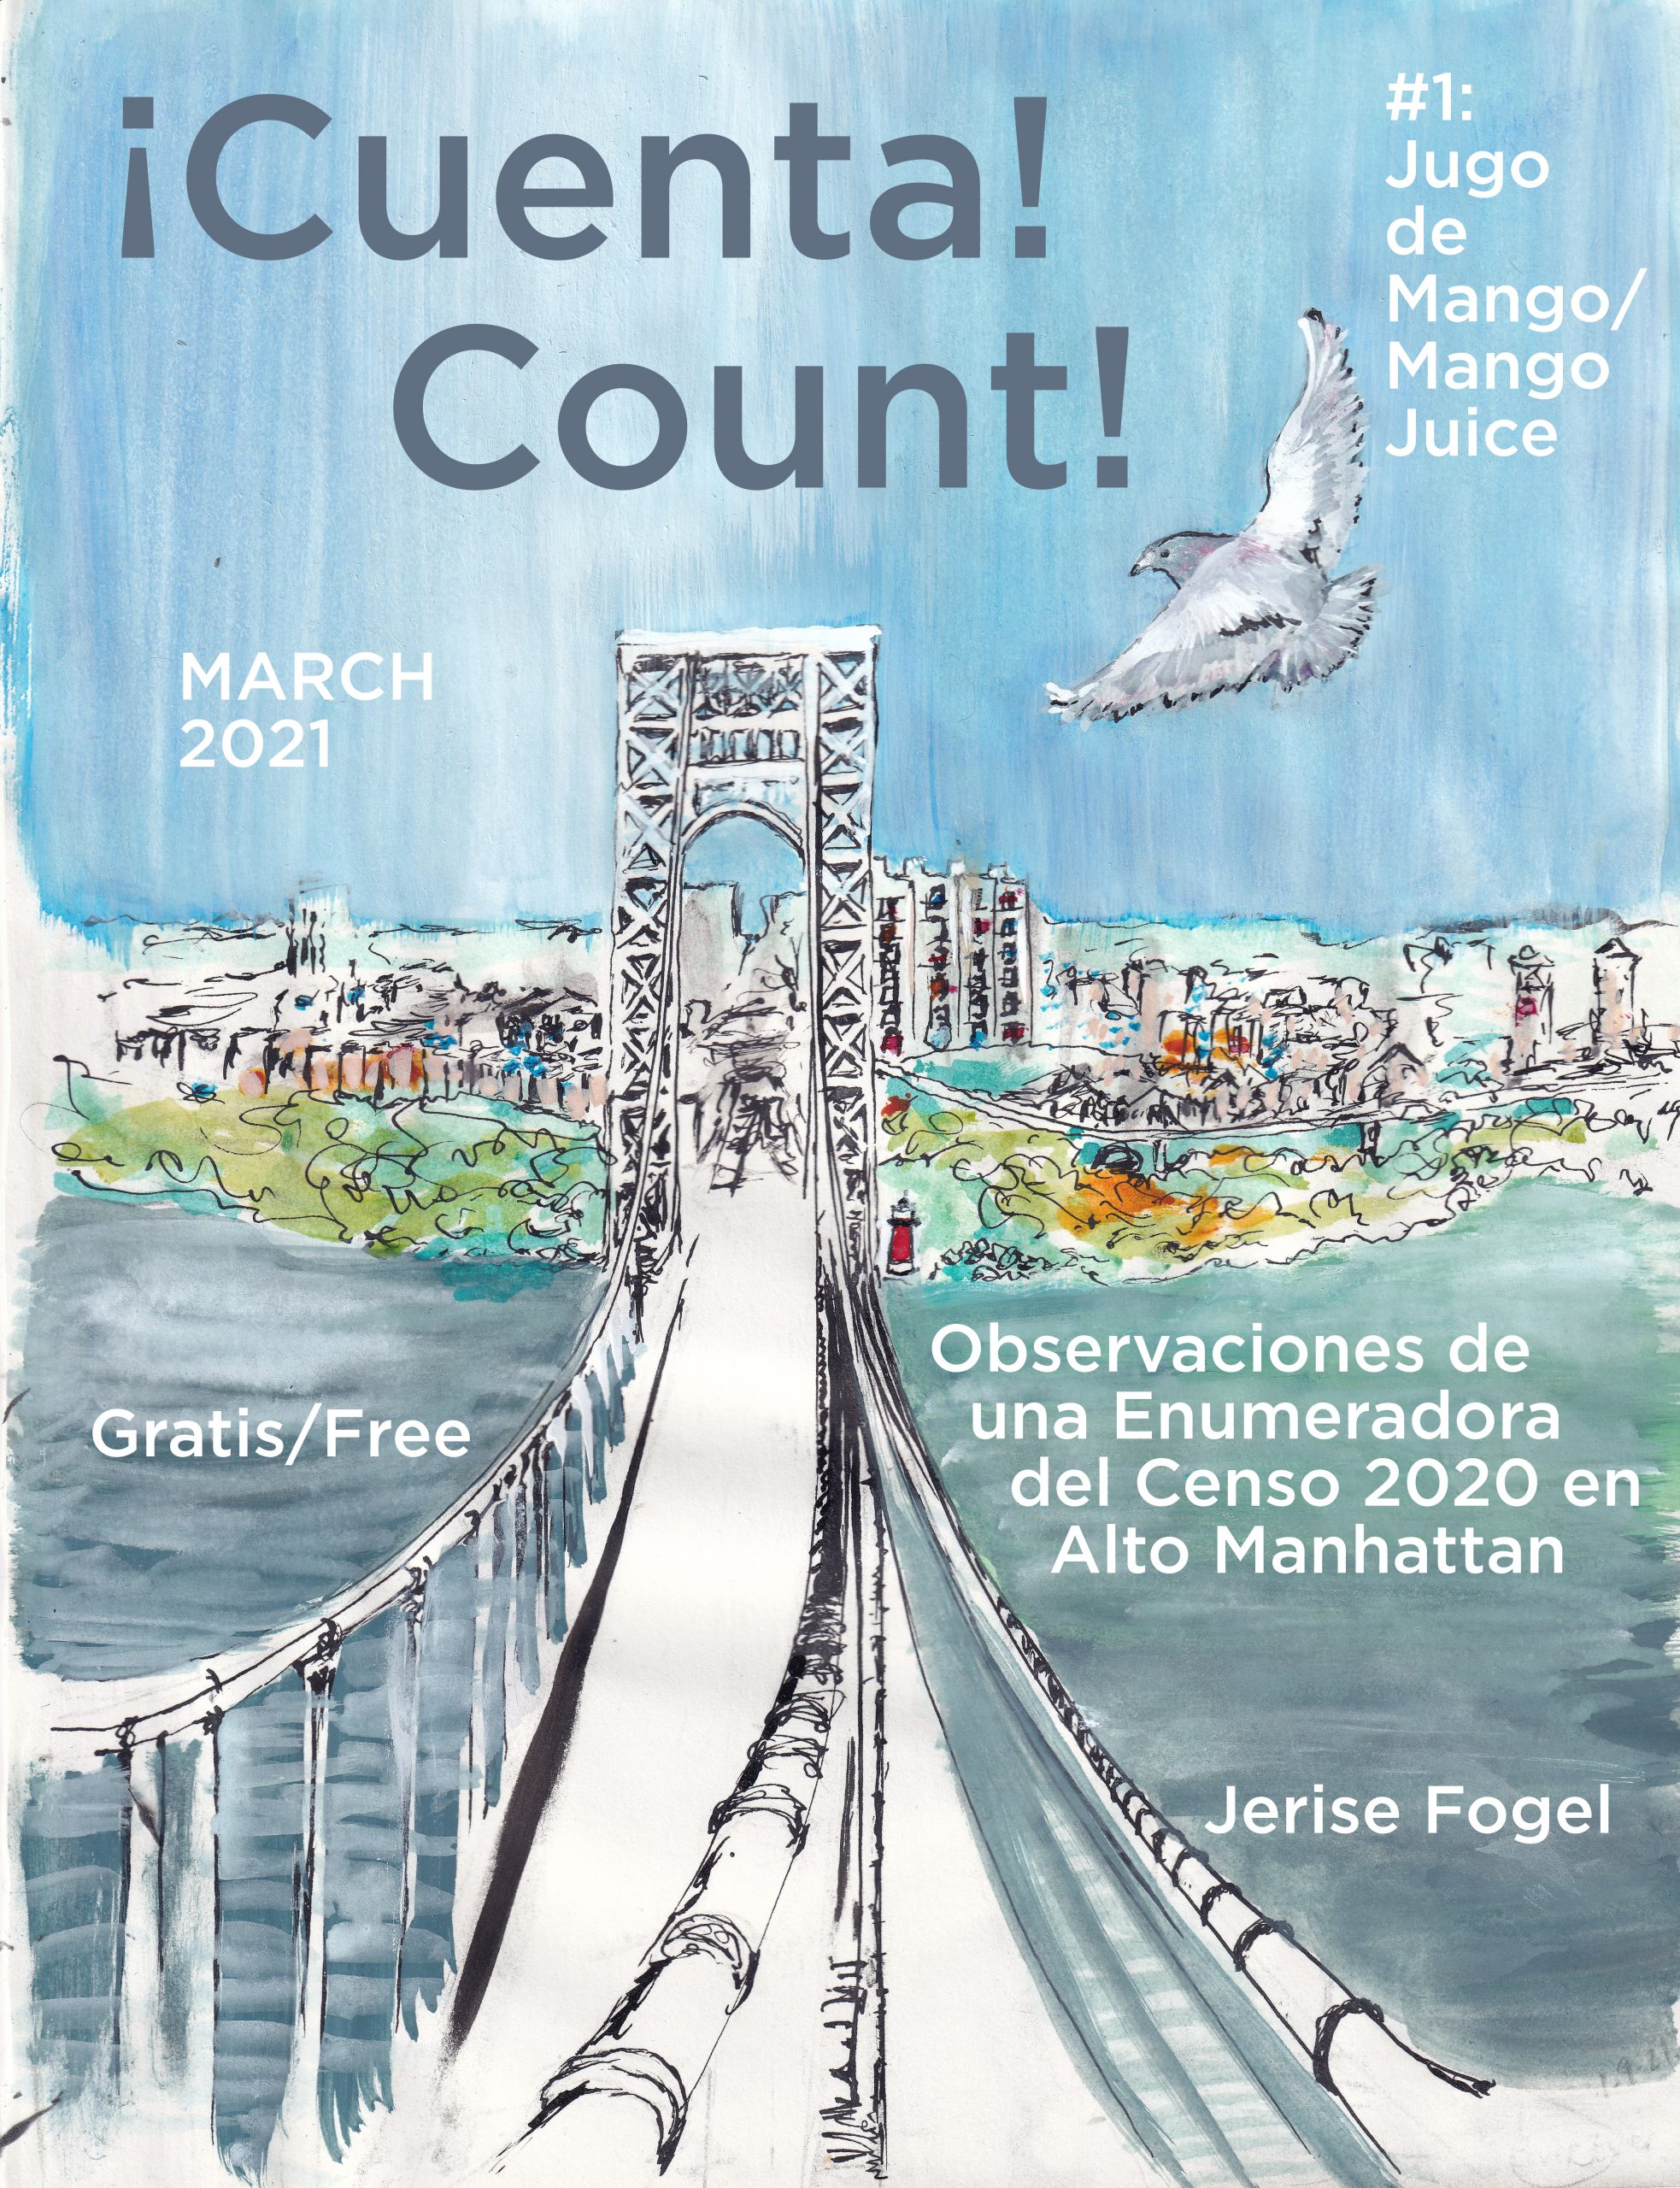 ¡Cuenta! Count! #1 - Mango Juice - Observations of a Census 2020 Enumerator in Washington Heights